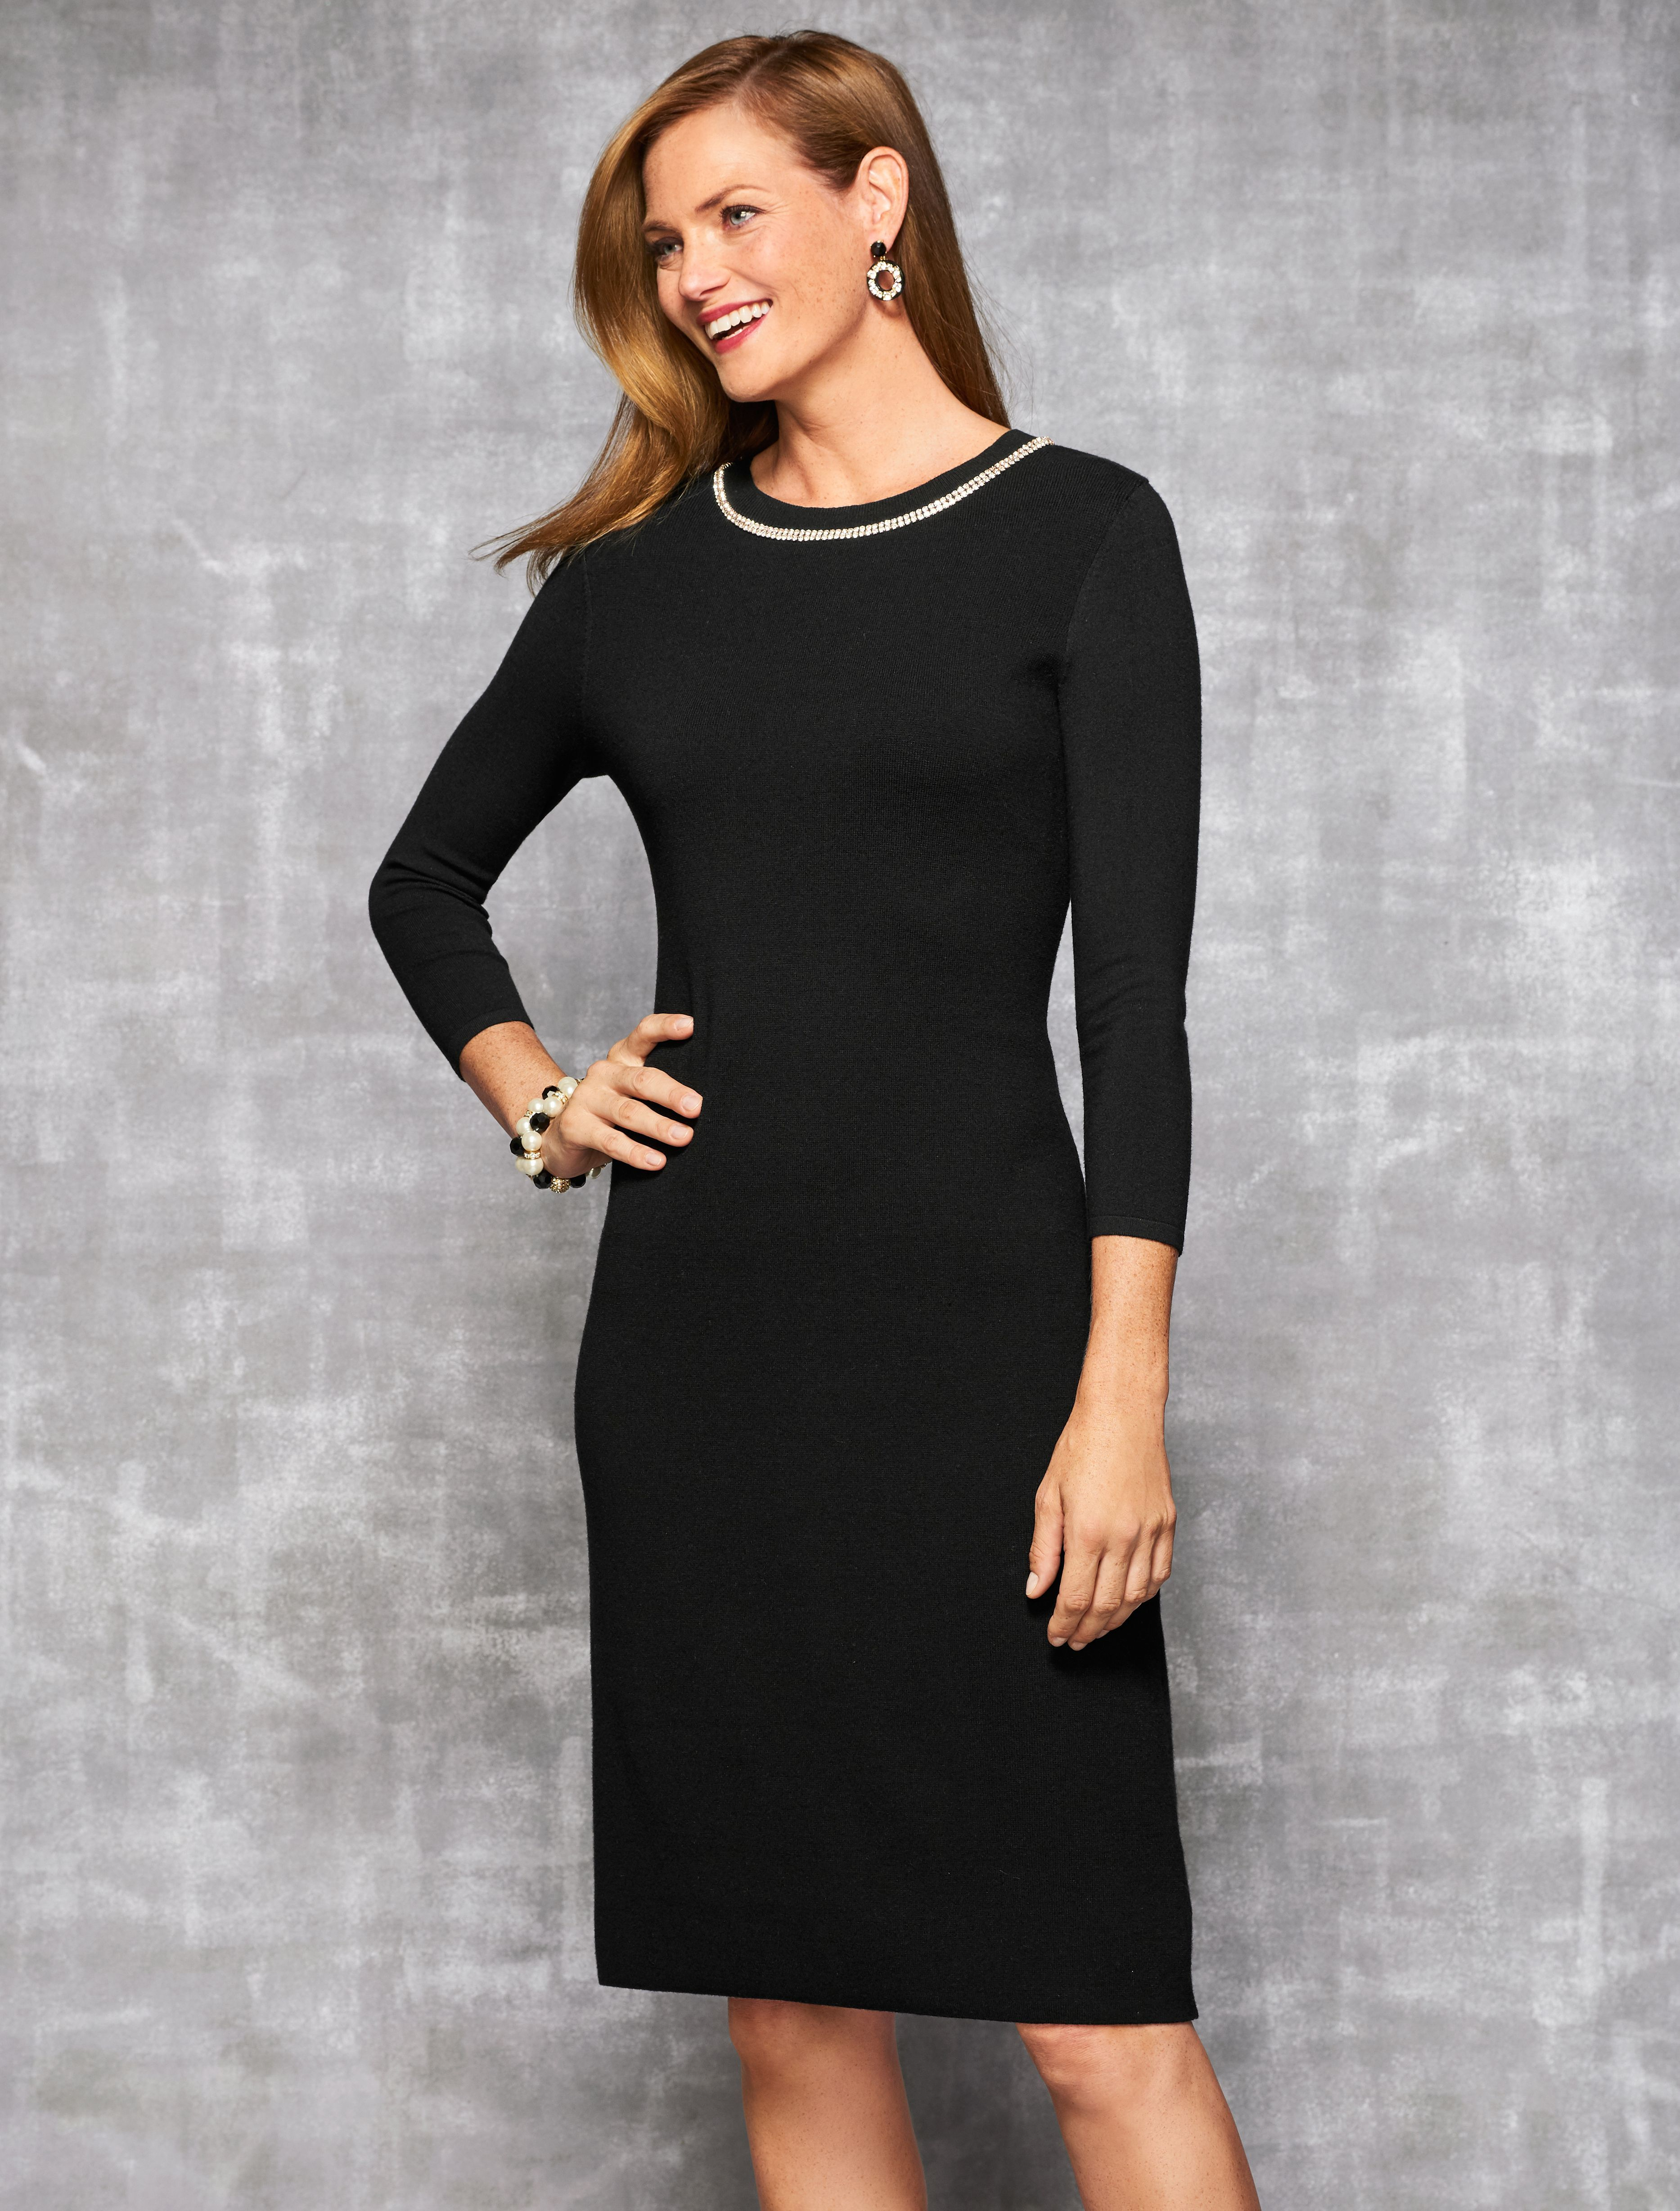 The soft comfort of a sweater in the sleek silhouette of a dress. This  classic little black sweater dress is elevated with a subtle diamanté trim cb1014c29